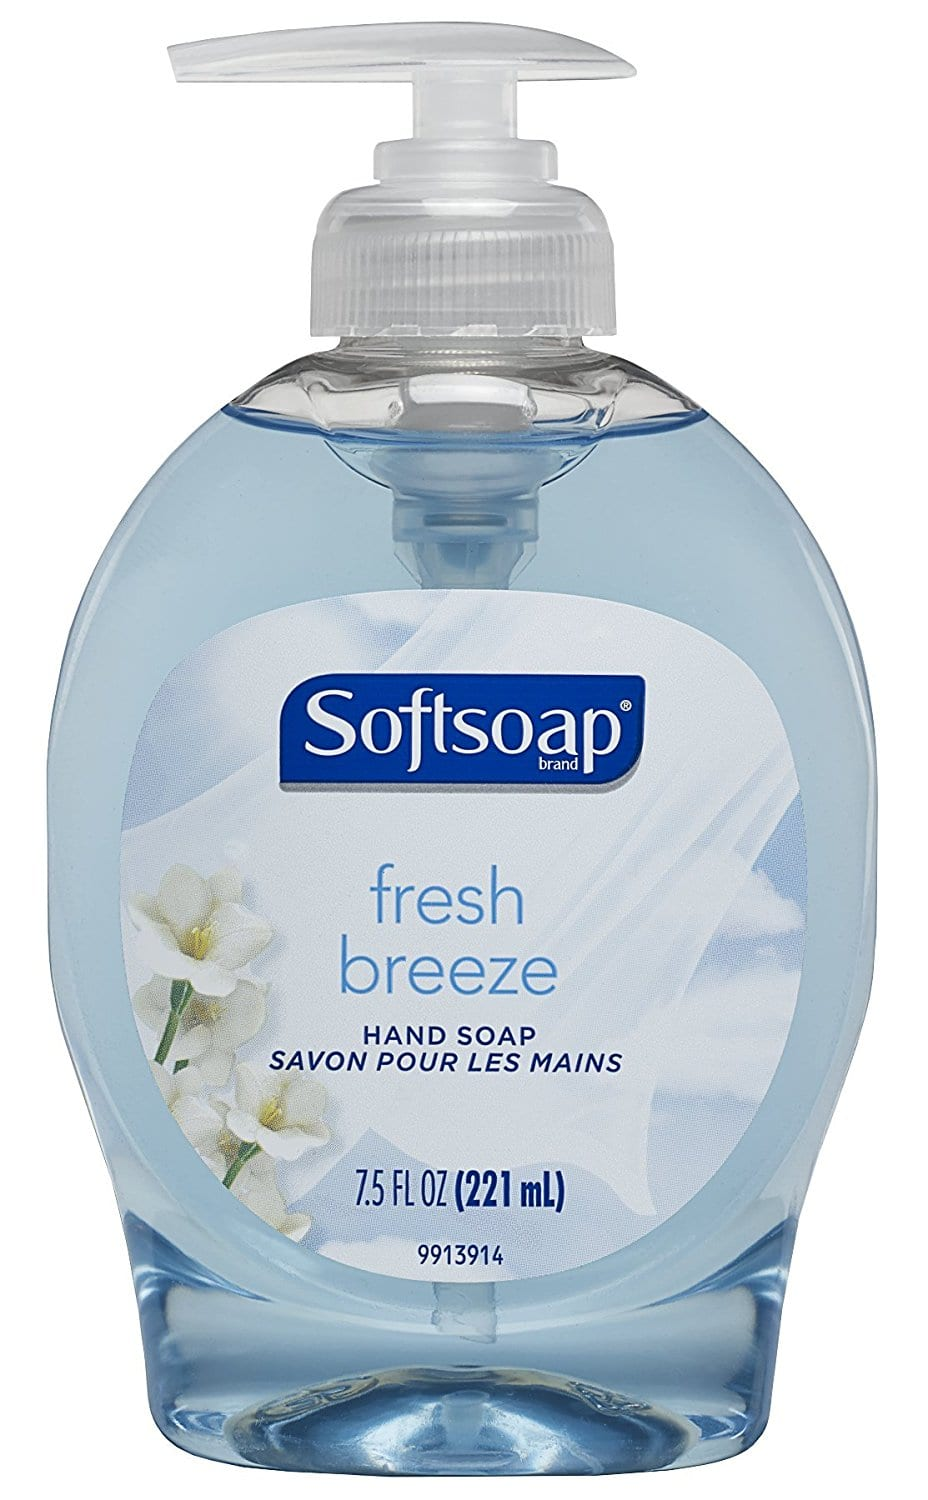 Softsoap Liquid Hand Soap, Fresh Breeze - 7.5 fluid ounce (12 Pack i.e total 90Oz) for reduced price - $11.76 @amazon